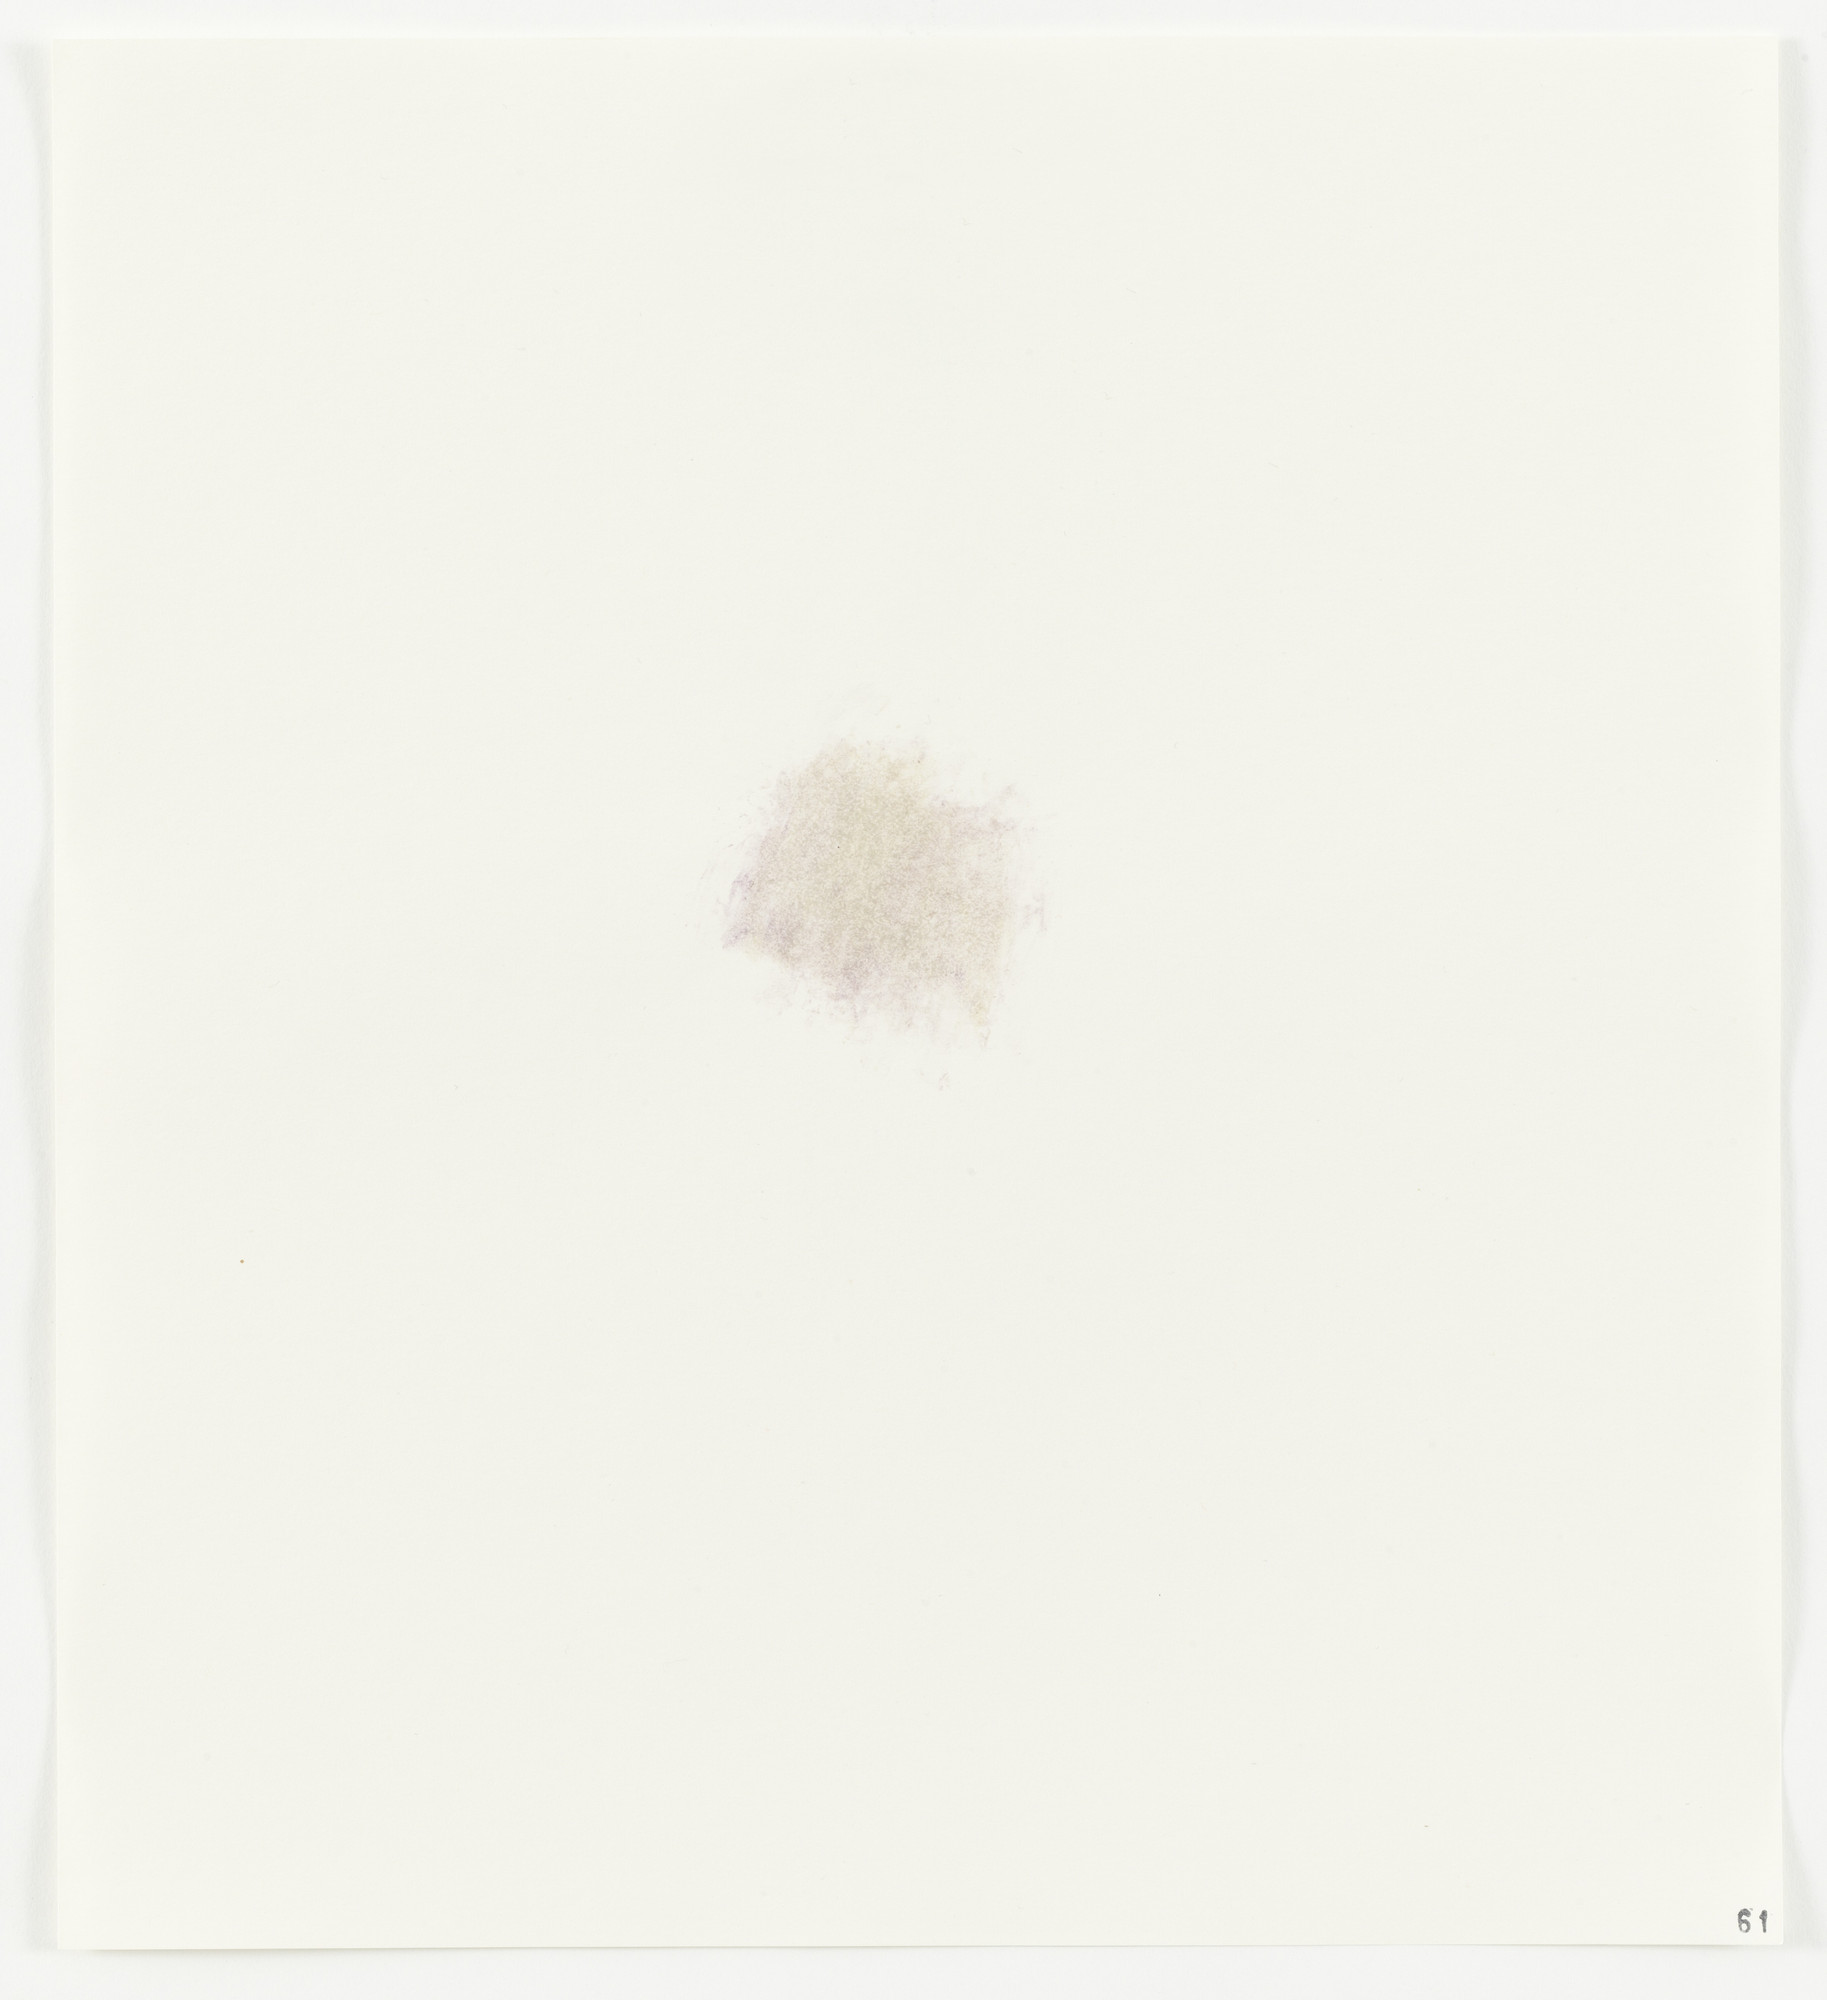 Edward Ruscha. Cabbage (Red) from Stains. 1969